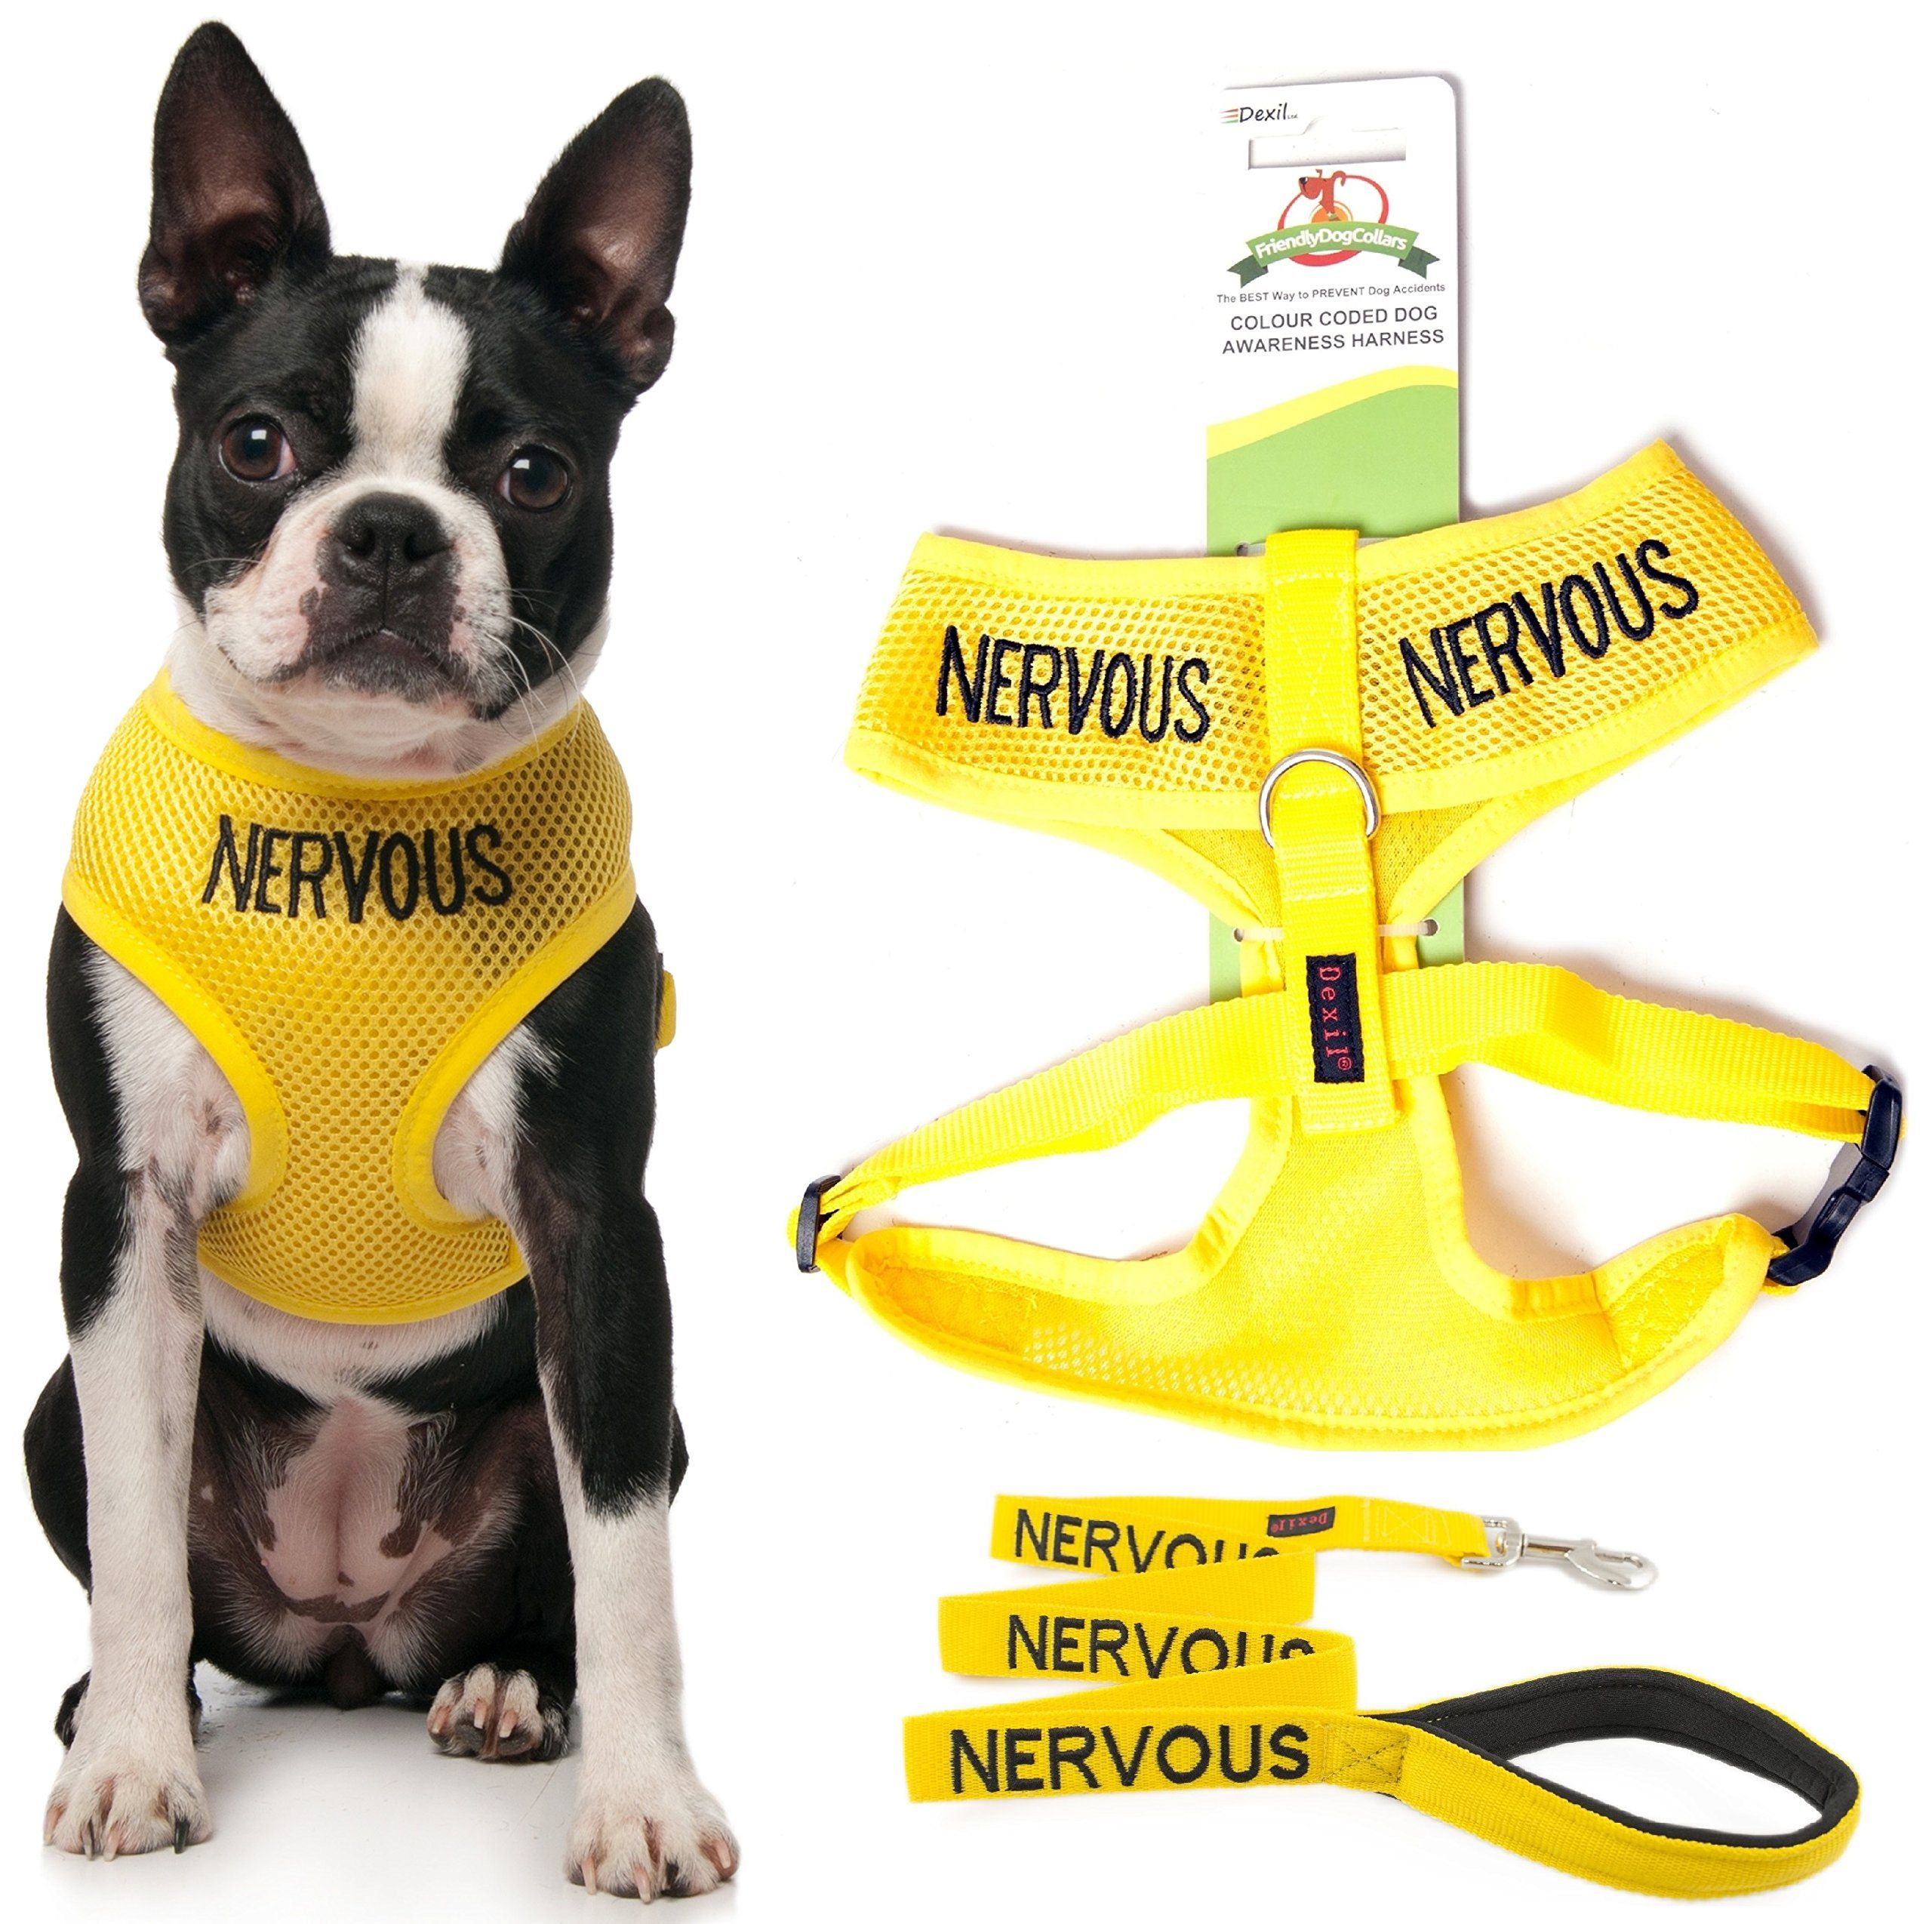 Nervous Yellow Color Coded Medium Vest Dog Harness 4 Foot Leash